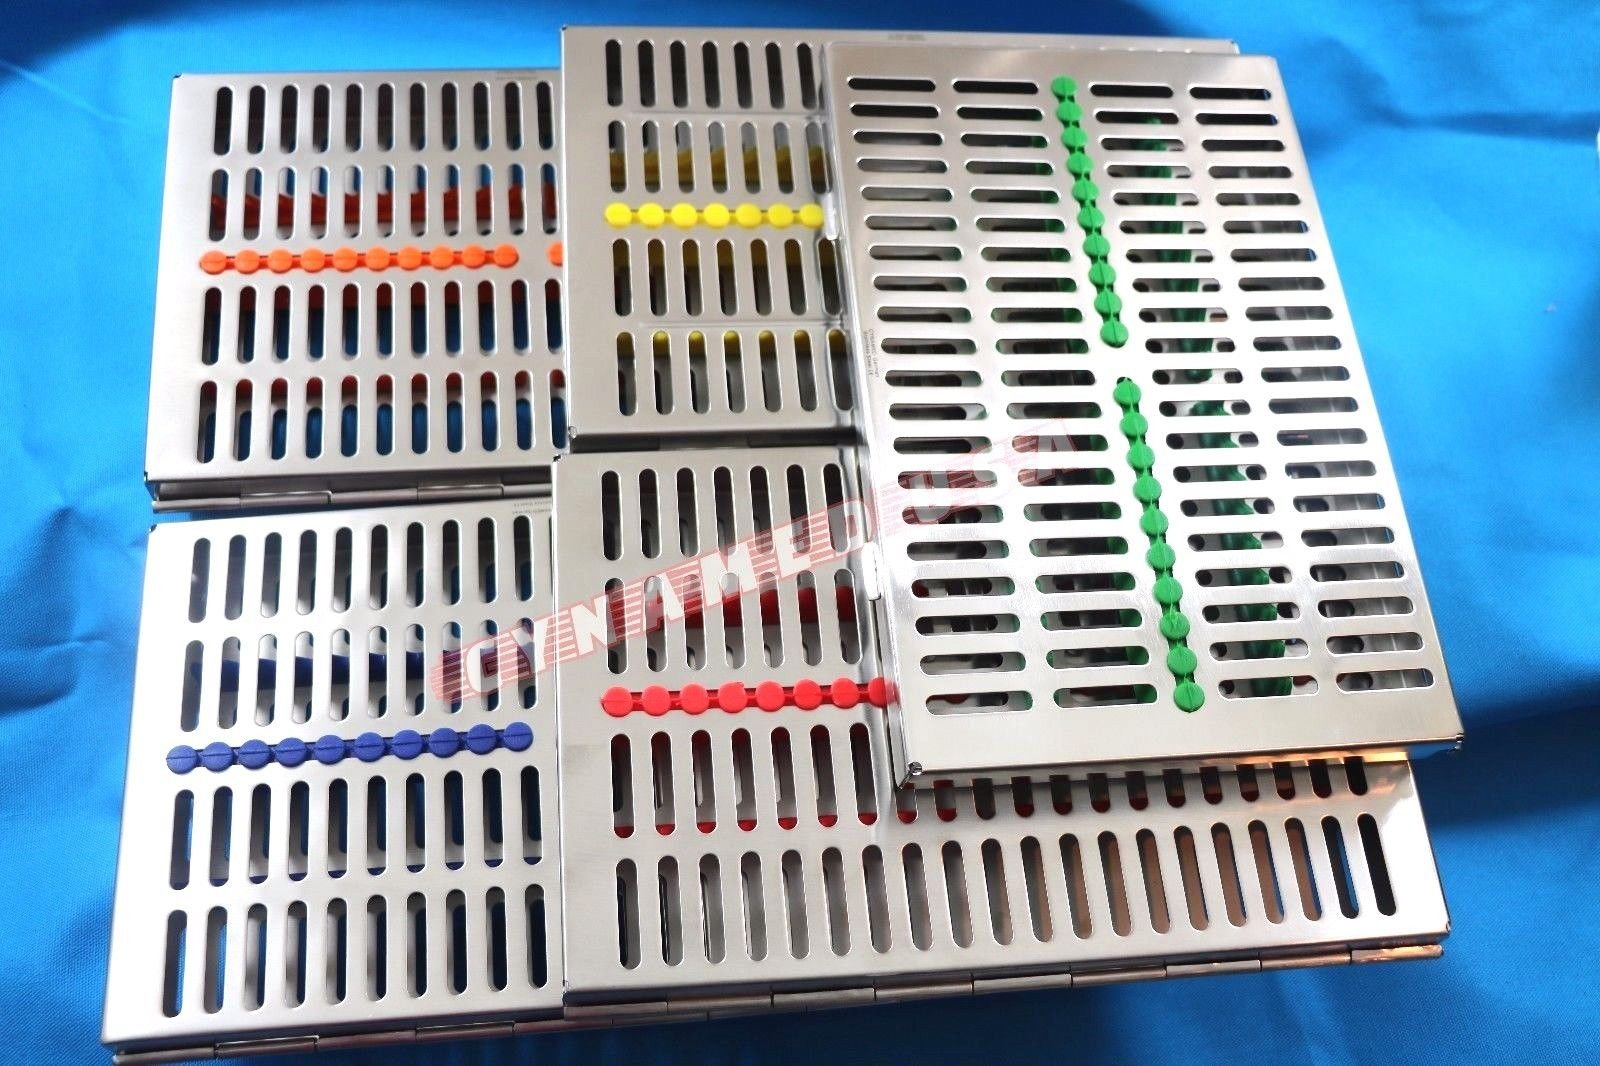 GERMAN STAINLESS 5 Dental Sterilization Cassette Rack Tray Box For 20 Surgical Instruments ( SET OF 5 COLOR )